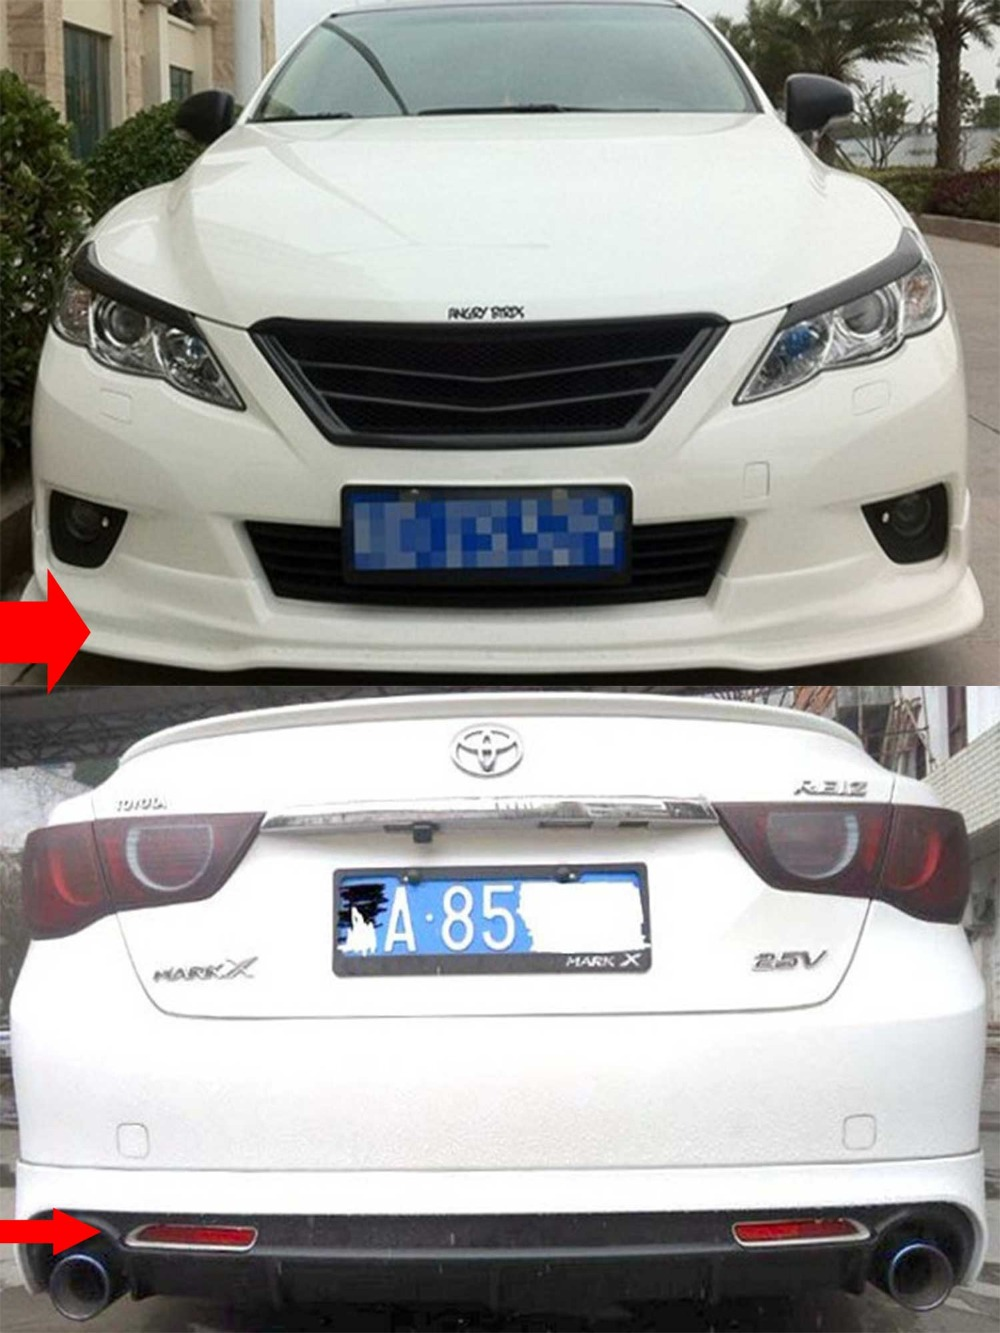 For Toyota MARK X Reiz Body Kit Front Rear Bumper Side Lips-in Body Kits  from Automobiles & Motorcycles on Aliexpress.com | Alibaba Group